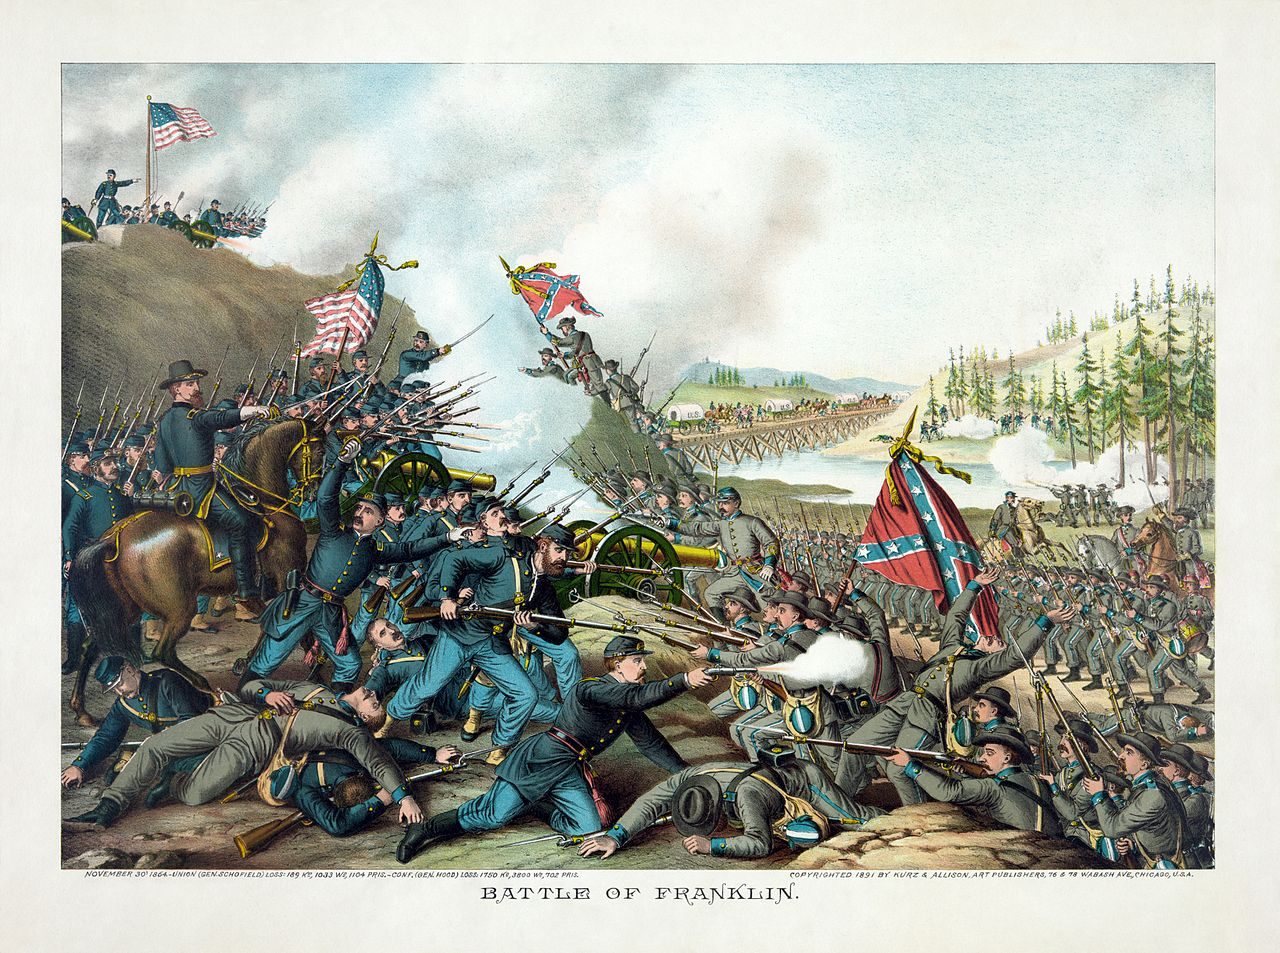 Kurz_and_Allison_-_Battle_of_Franklin,_November_30,_1864